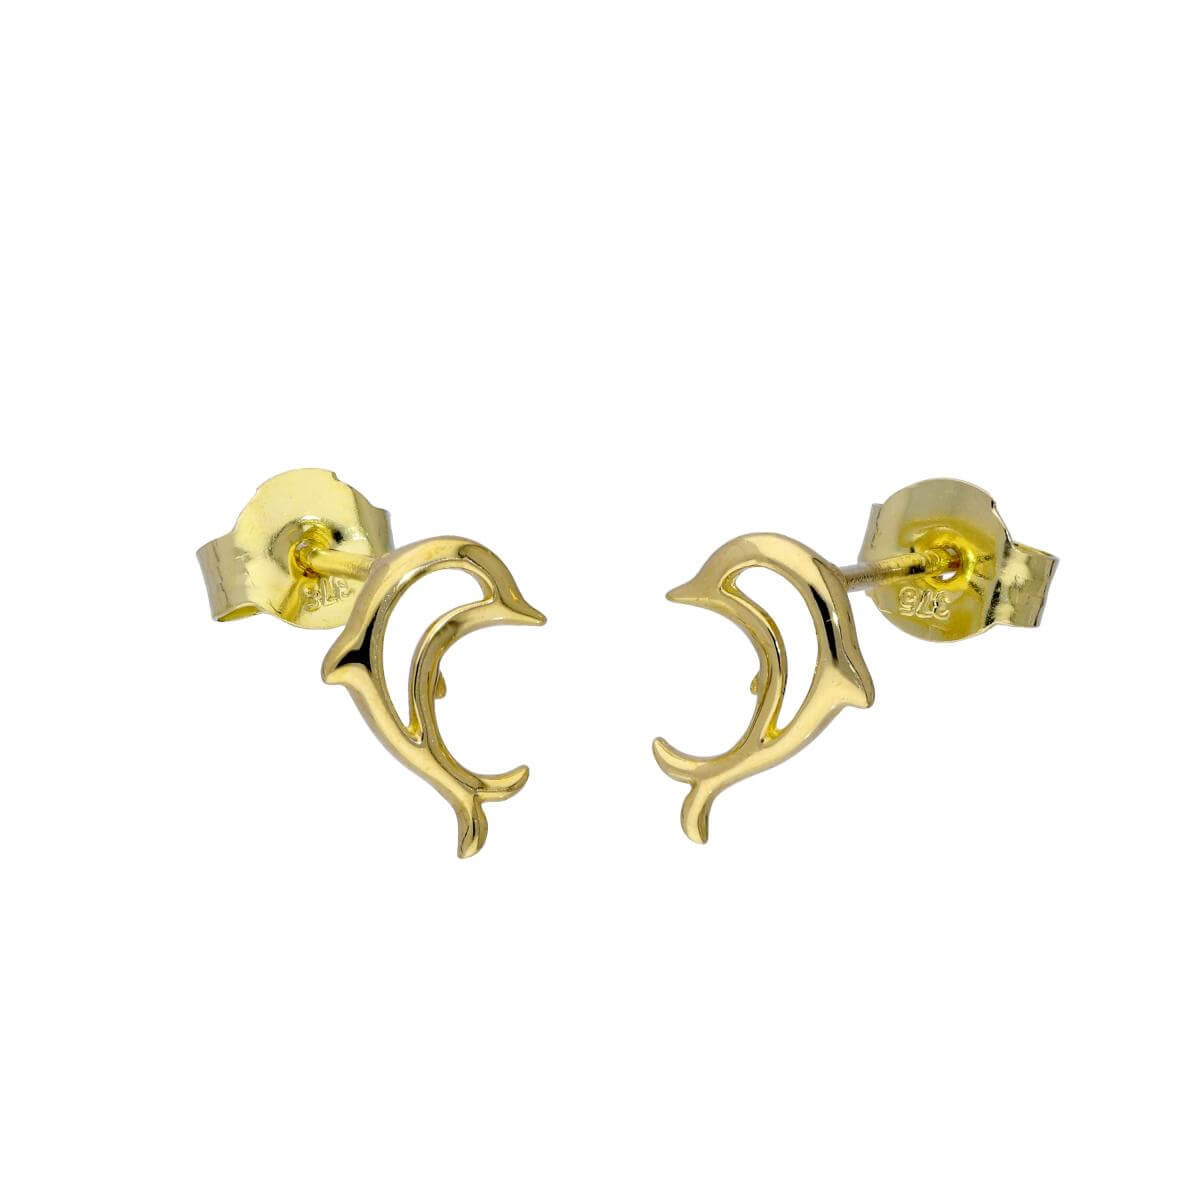 9ct Gold Open Jumping Dolphin Stud Earrings